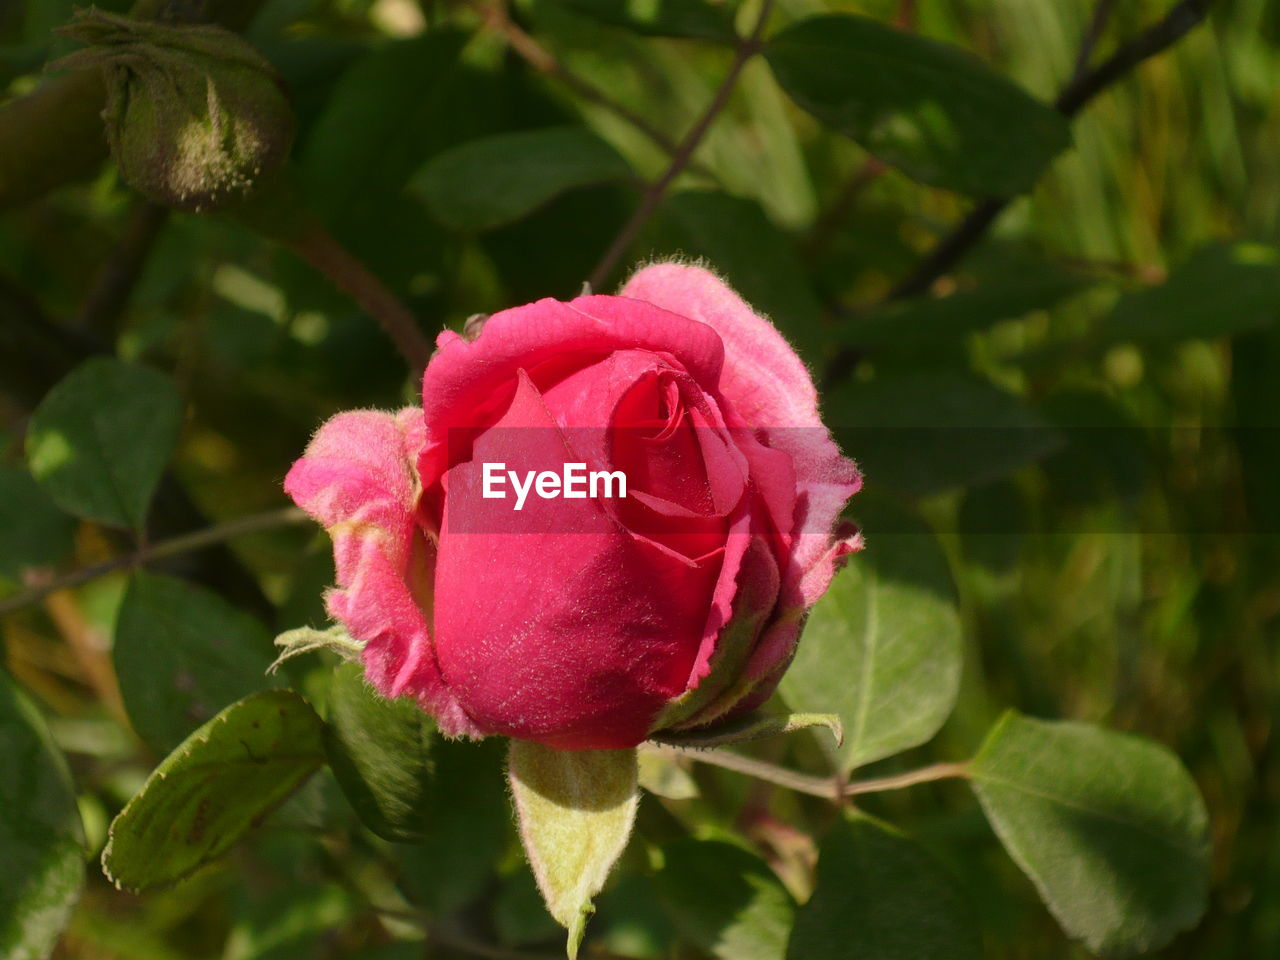 flower, fragility, nature, petal, plant, leaf, growth, beauty in nature, pink color, flower head, rose - flower, day, close-up, no people, freshness, wild rose, outdoors, blooming